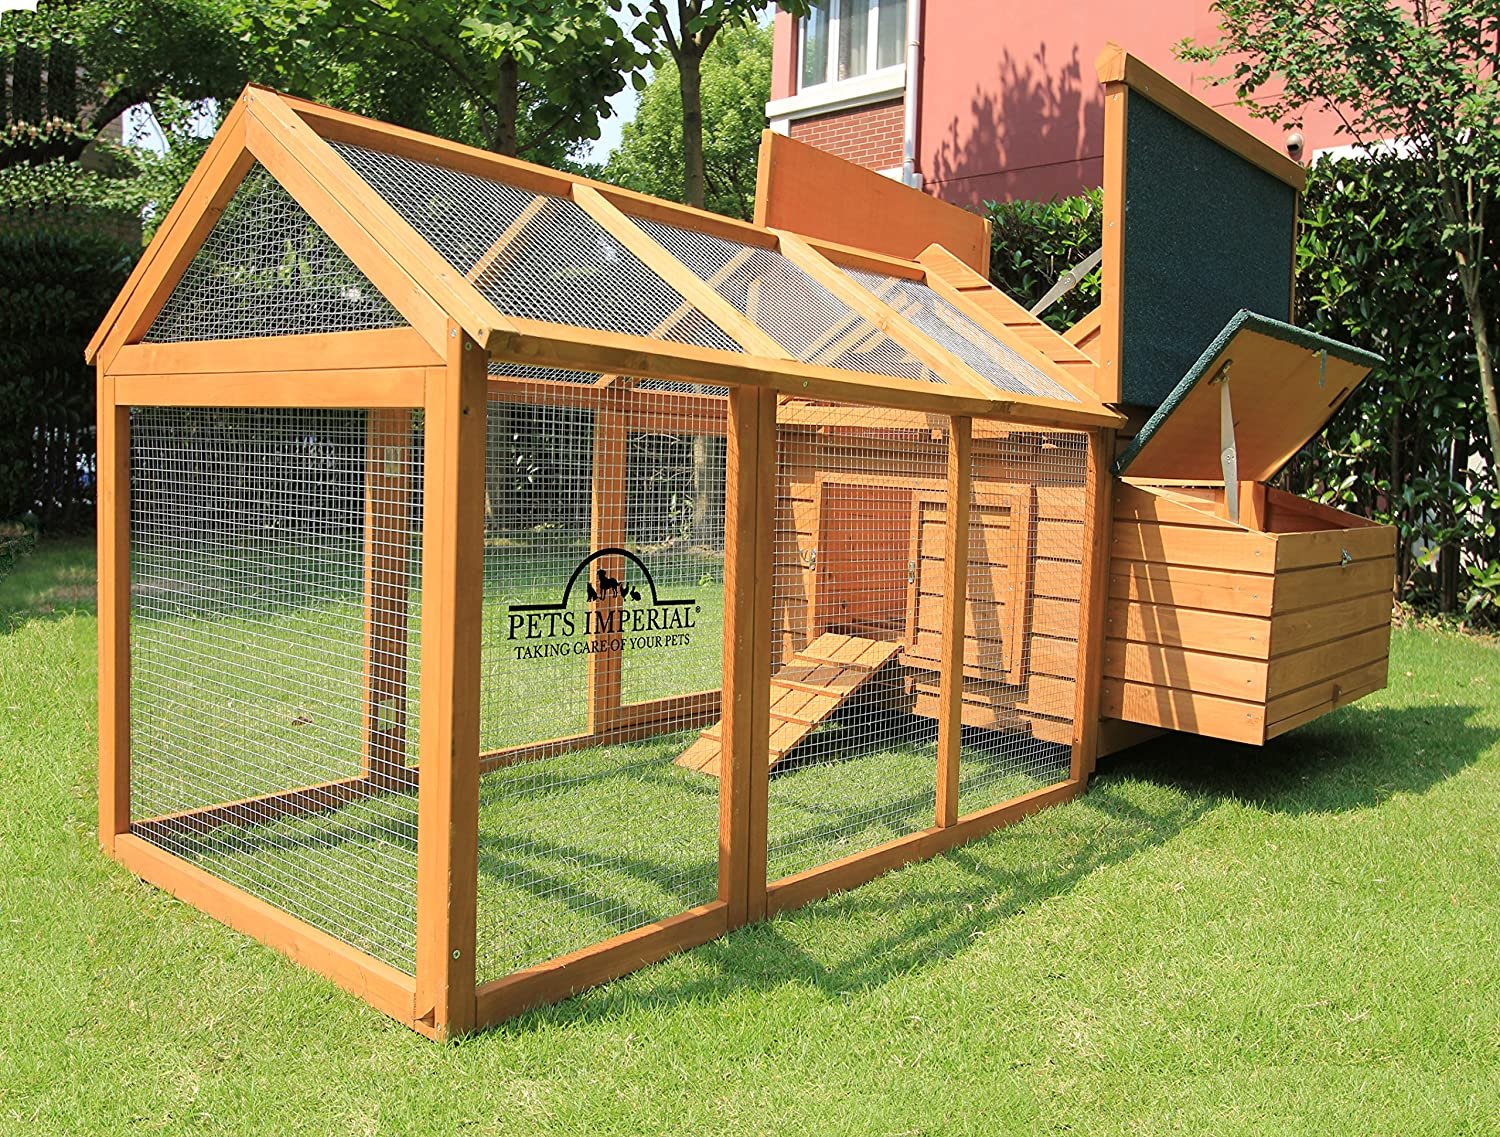 amazon com pets imperial single savoy large chicken coop nest